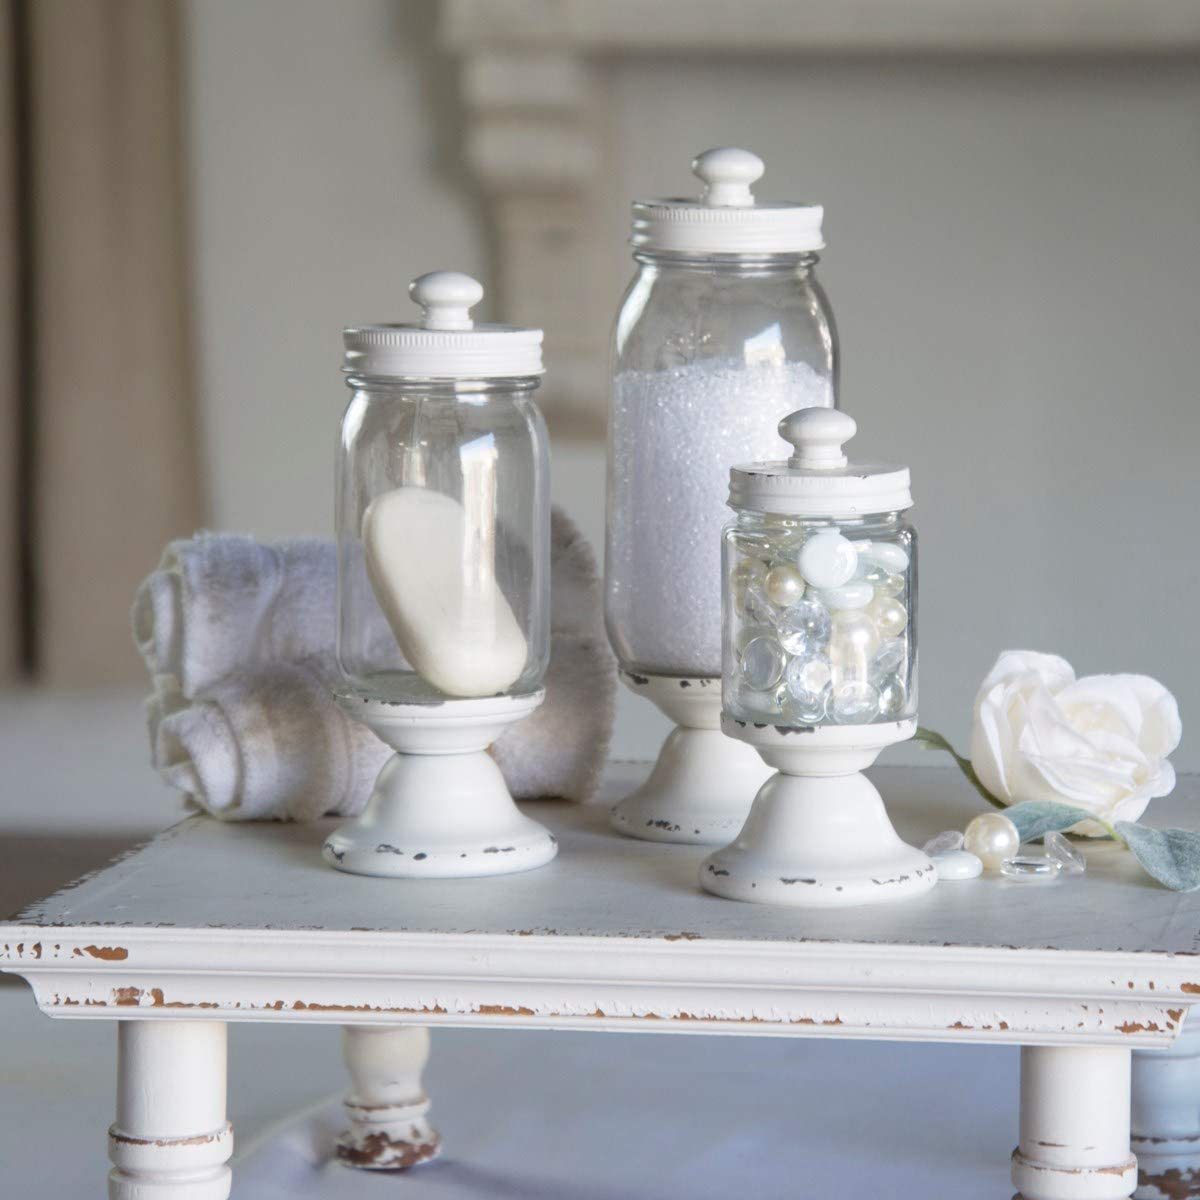 VIPSSCI Set of 12 Glass Jars with Metal Lids Antique White